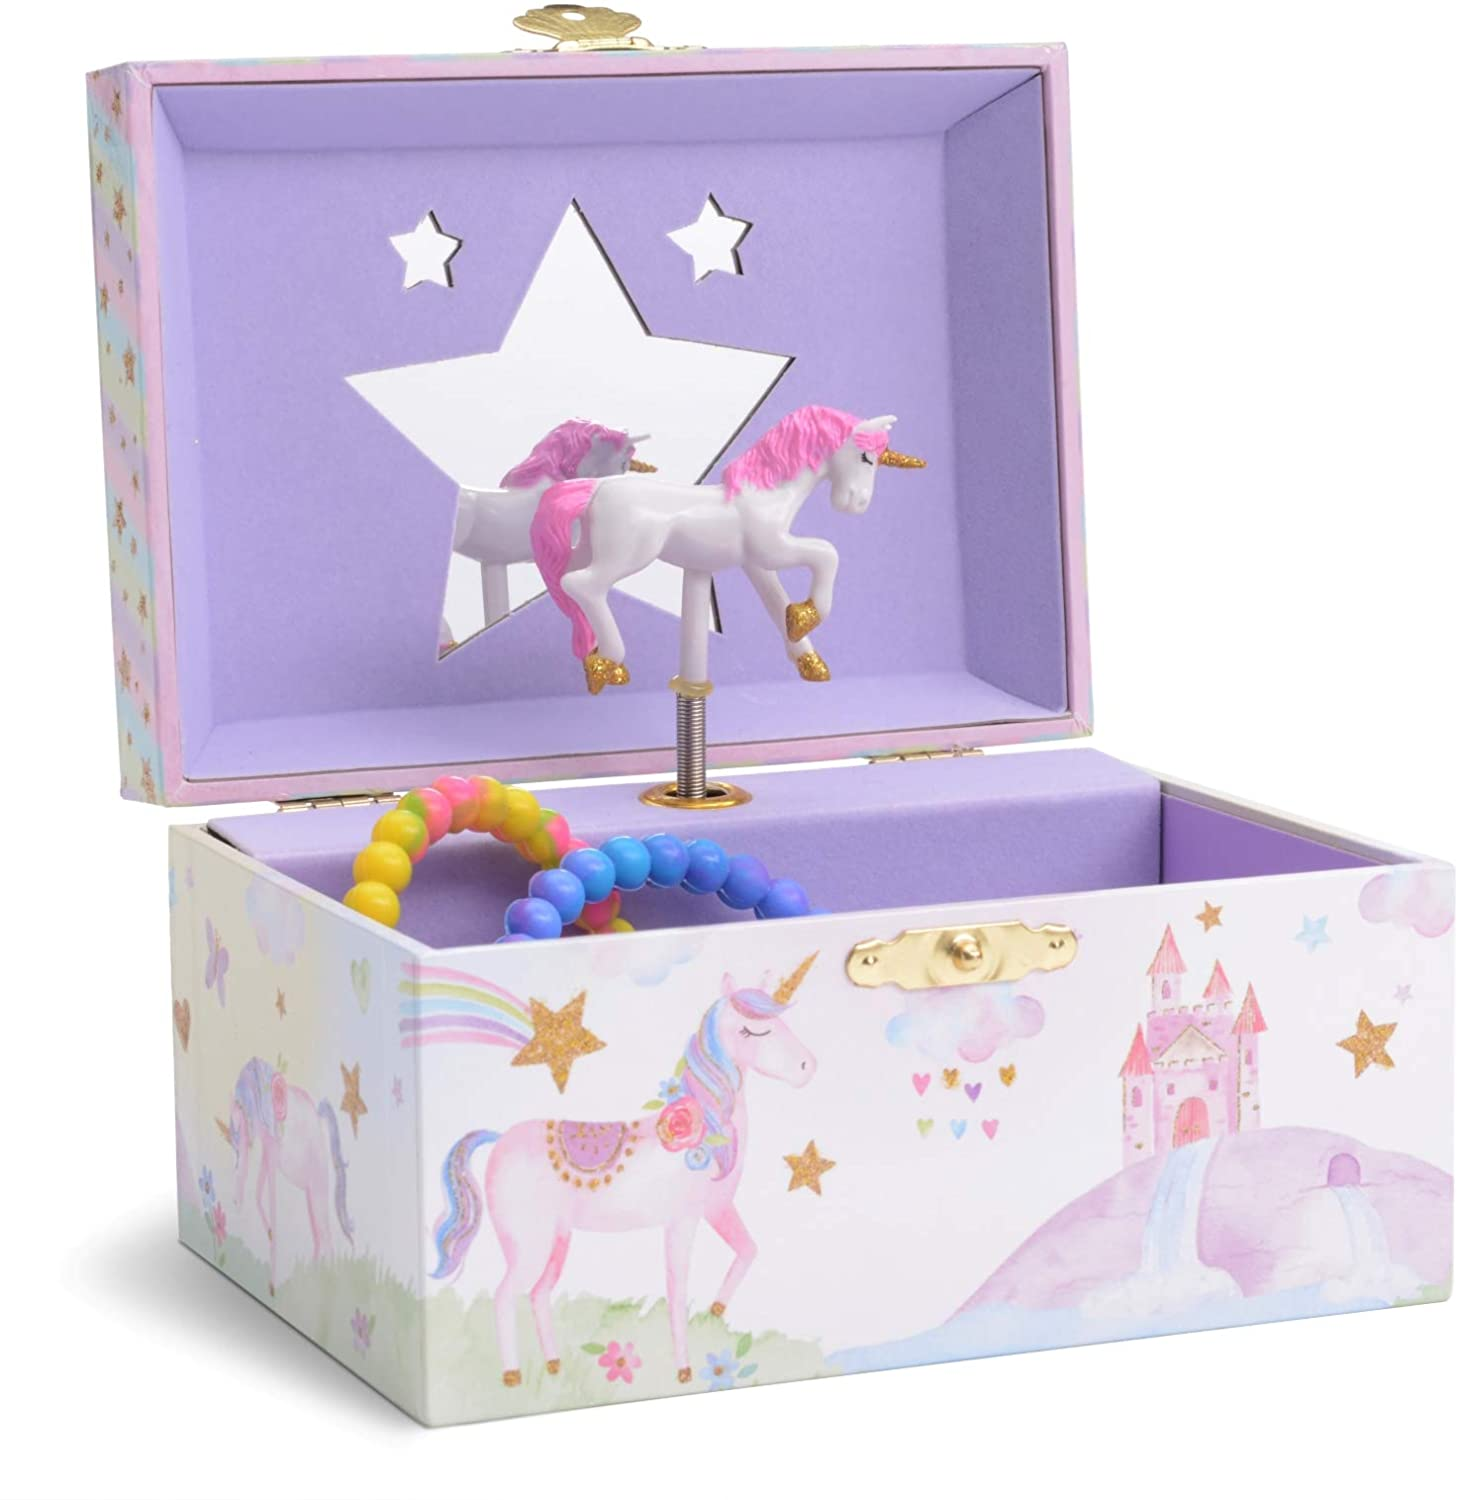 Jewelkeeper Girl's Musical Jewelry Storage Box with Spinning Unicorn, Glitter Rainbow and Stars Design, The Unicorn Tune: Toys & Games